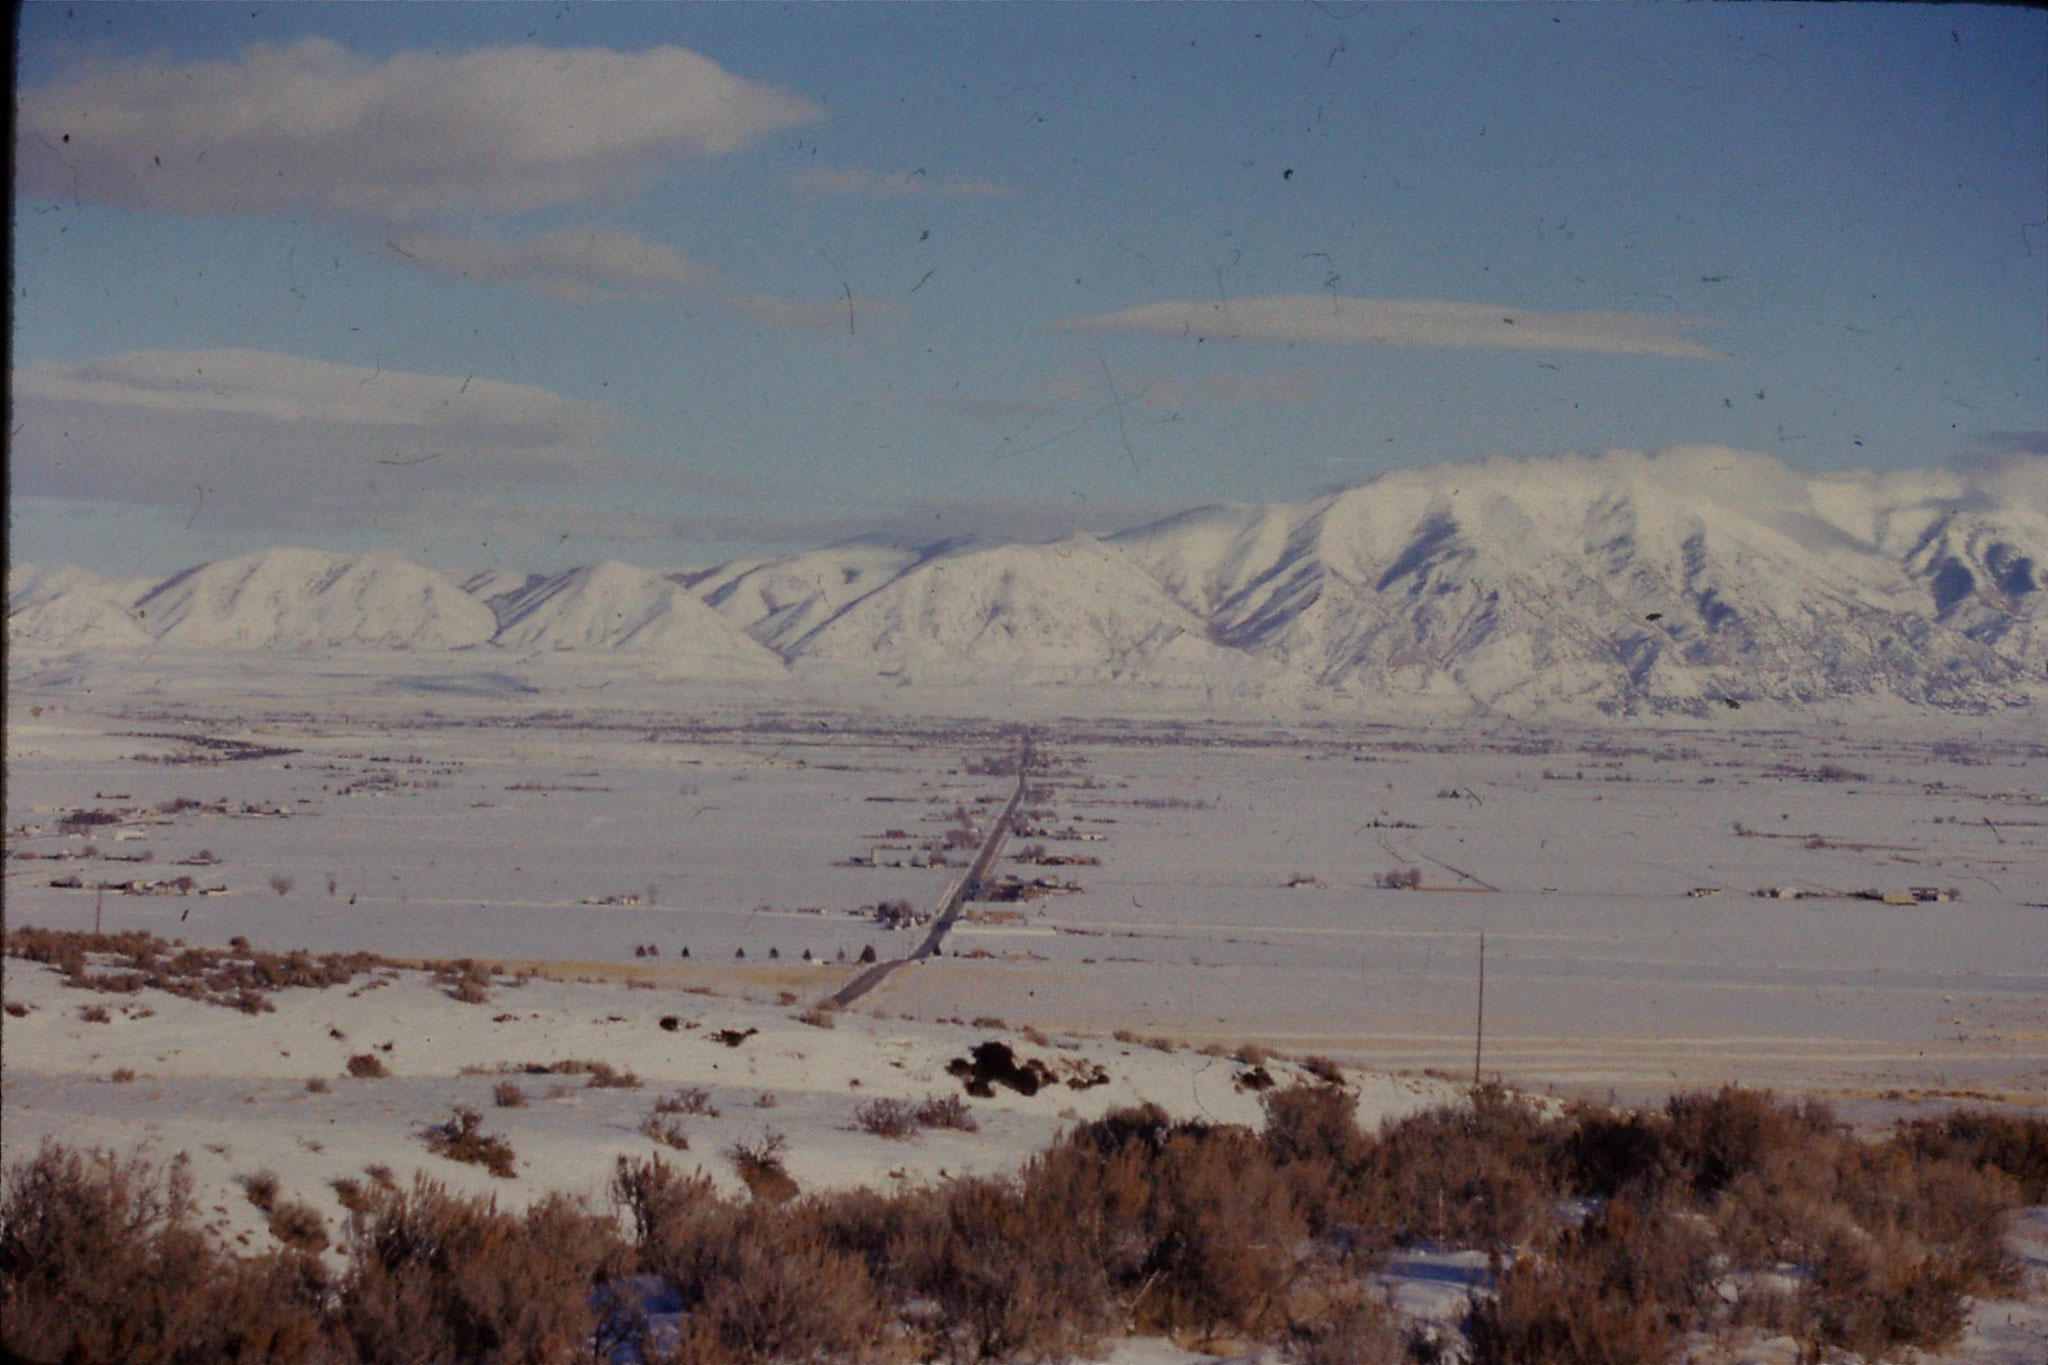 19/1/1991: 14: Idaho Bothwell north of Brigham City